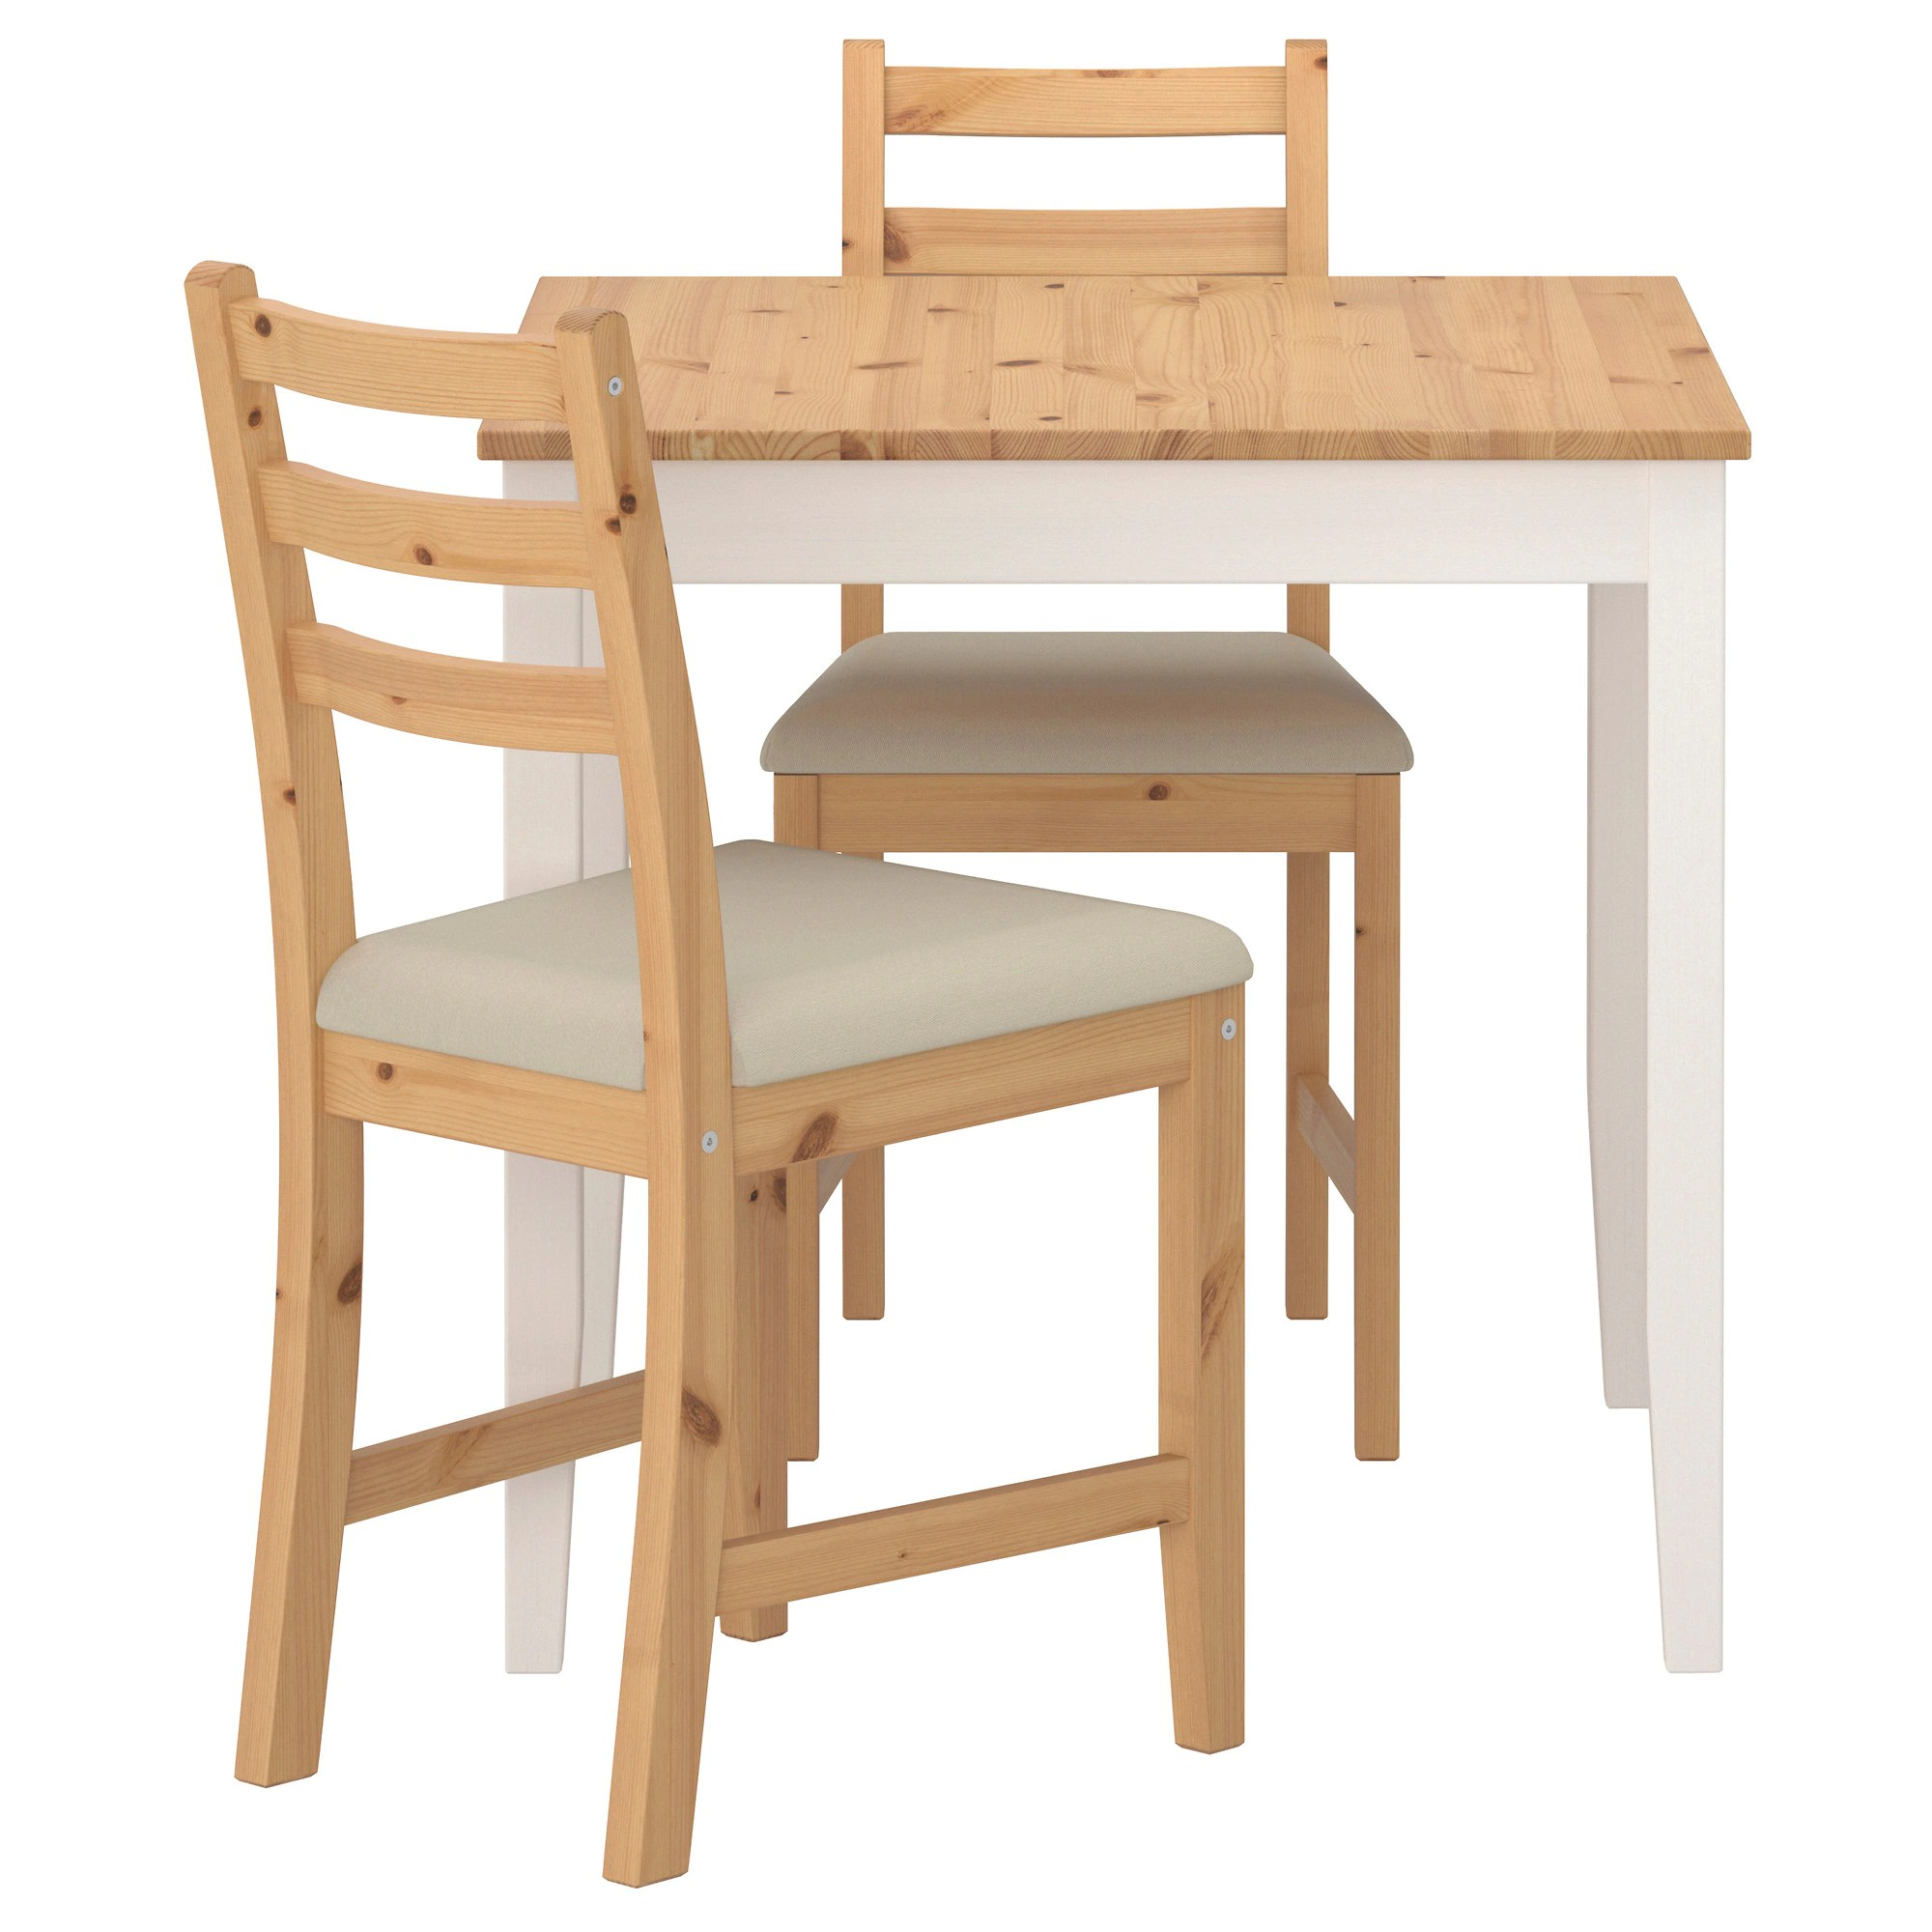 S two seat kitchen table